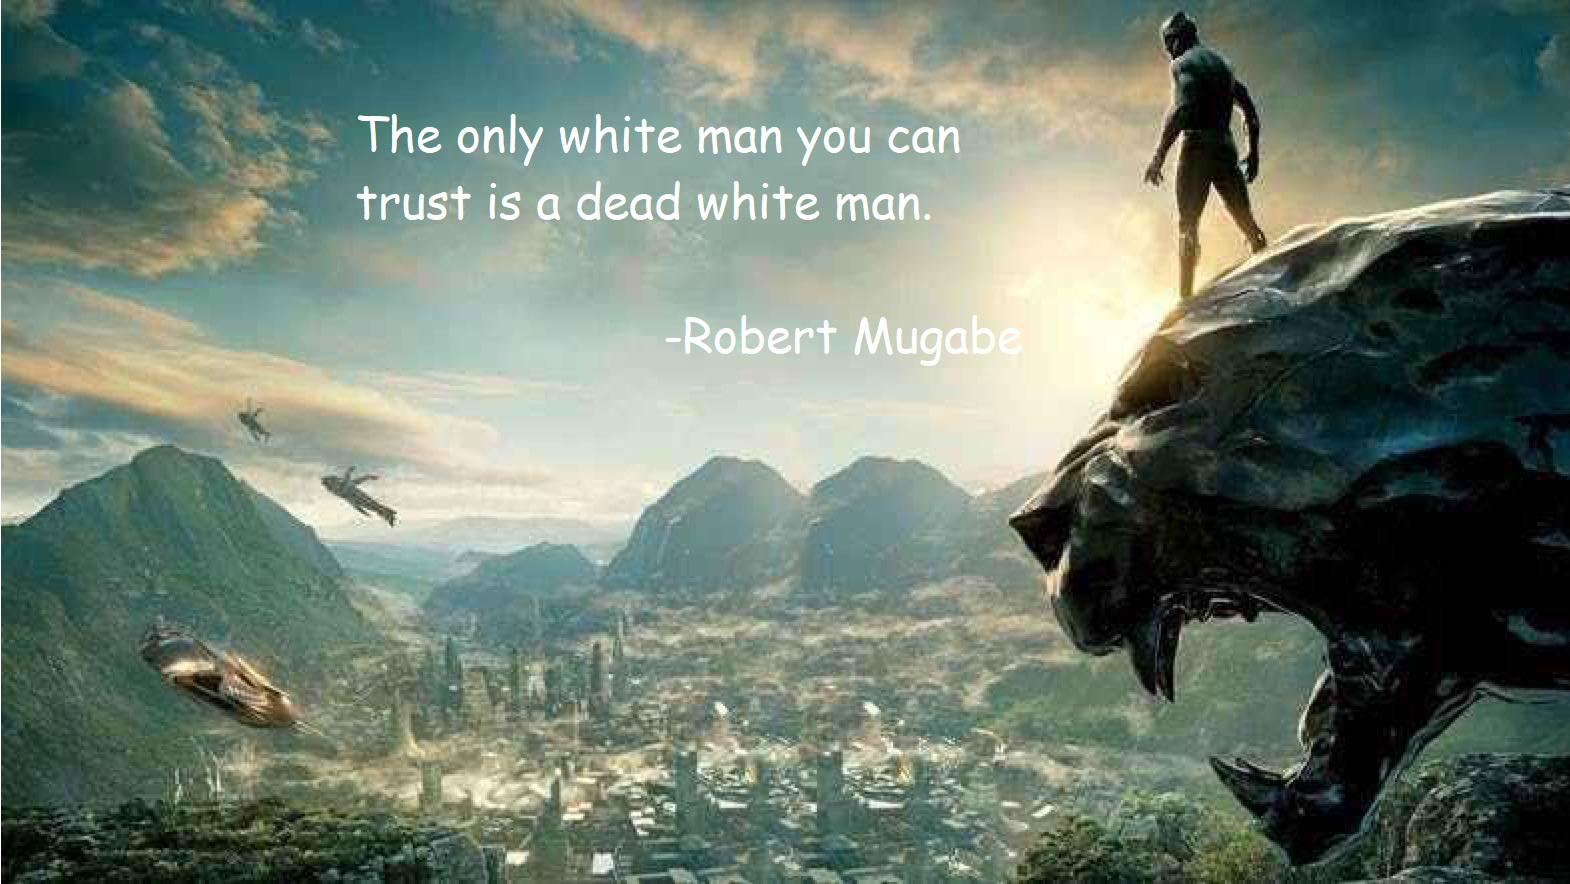 Inspiration from a black hero [1570×884]